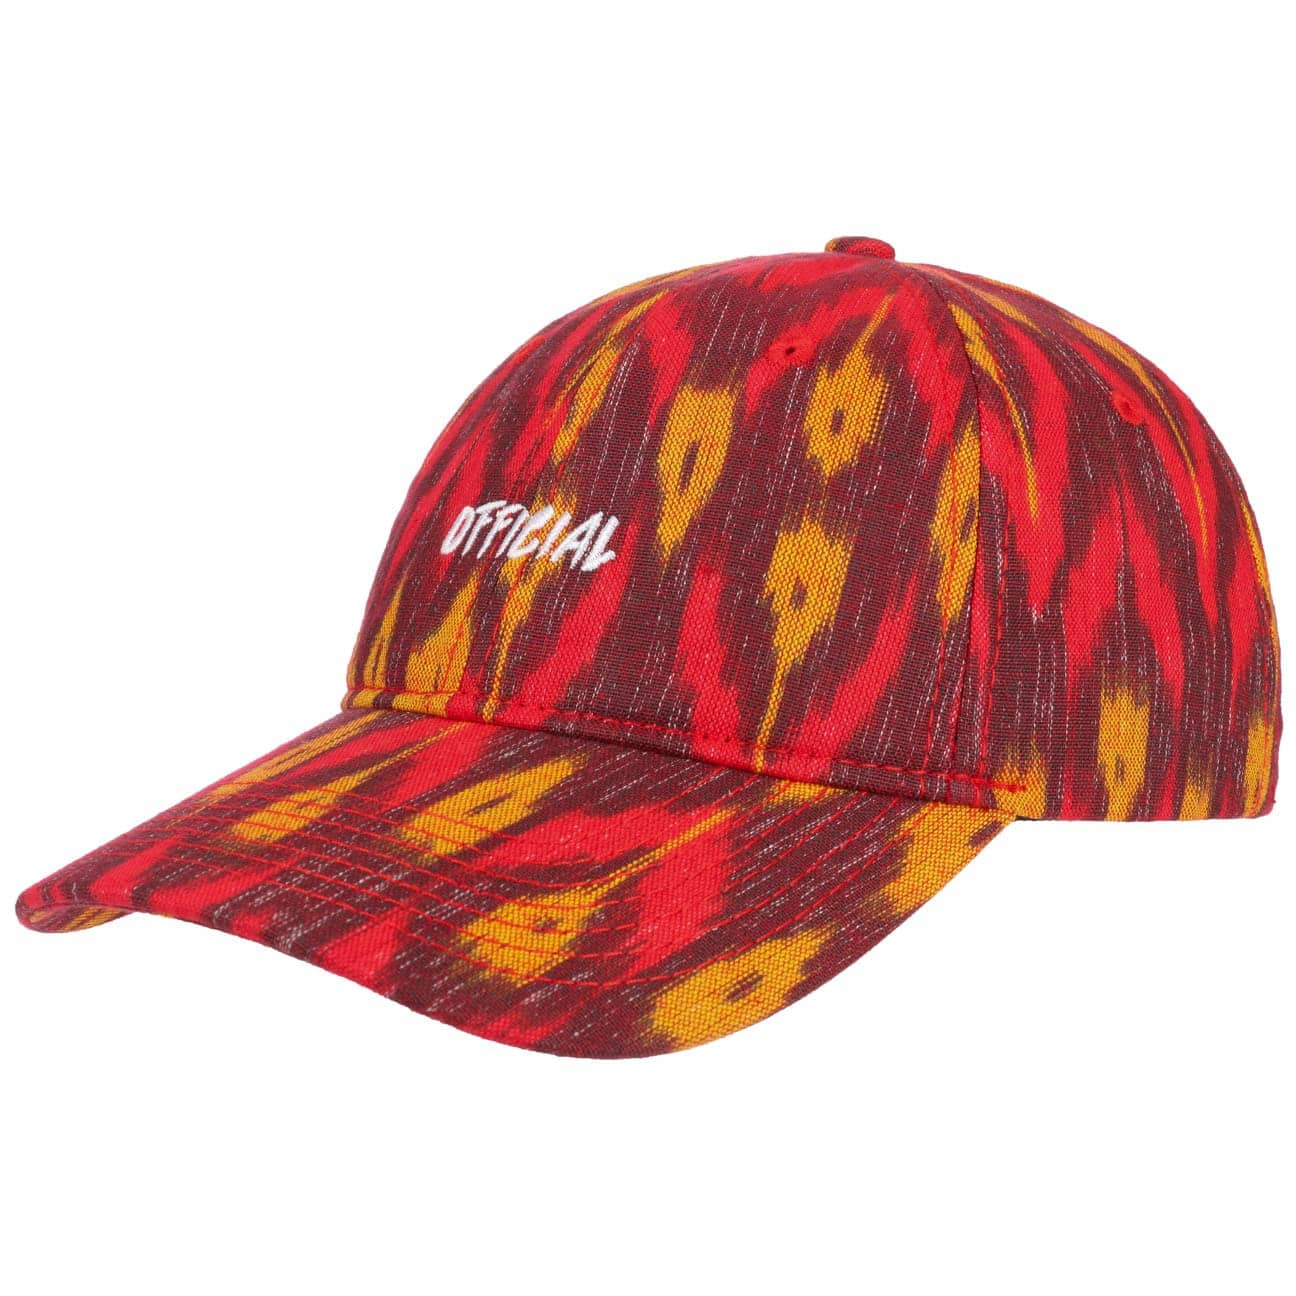 Gorra Artisan Strapback by Official Headwear  gorra de baseball